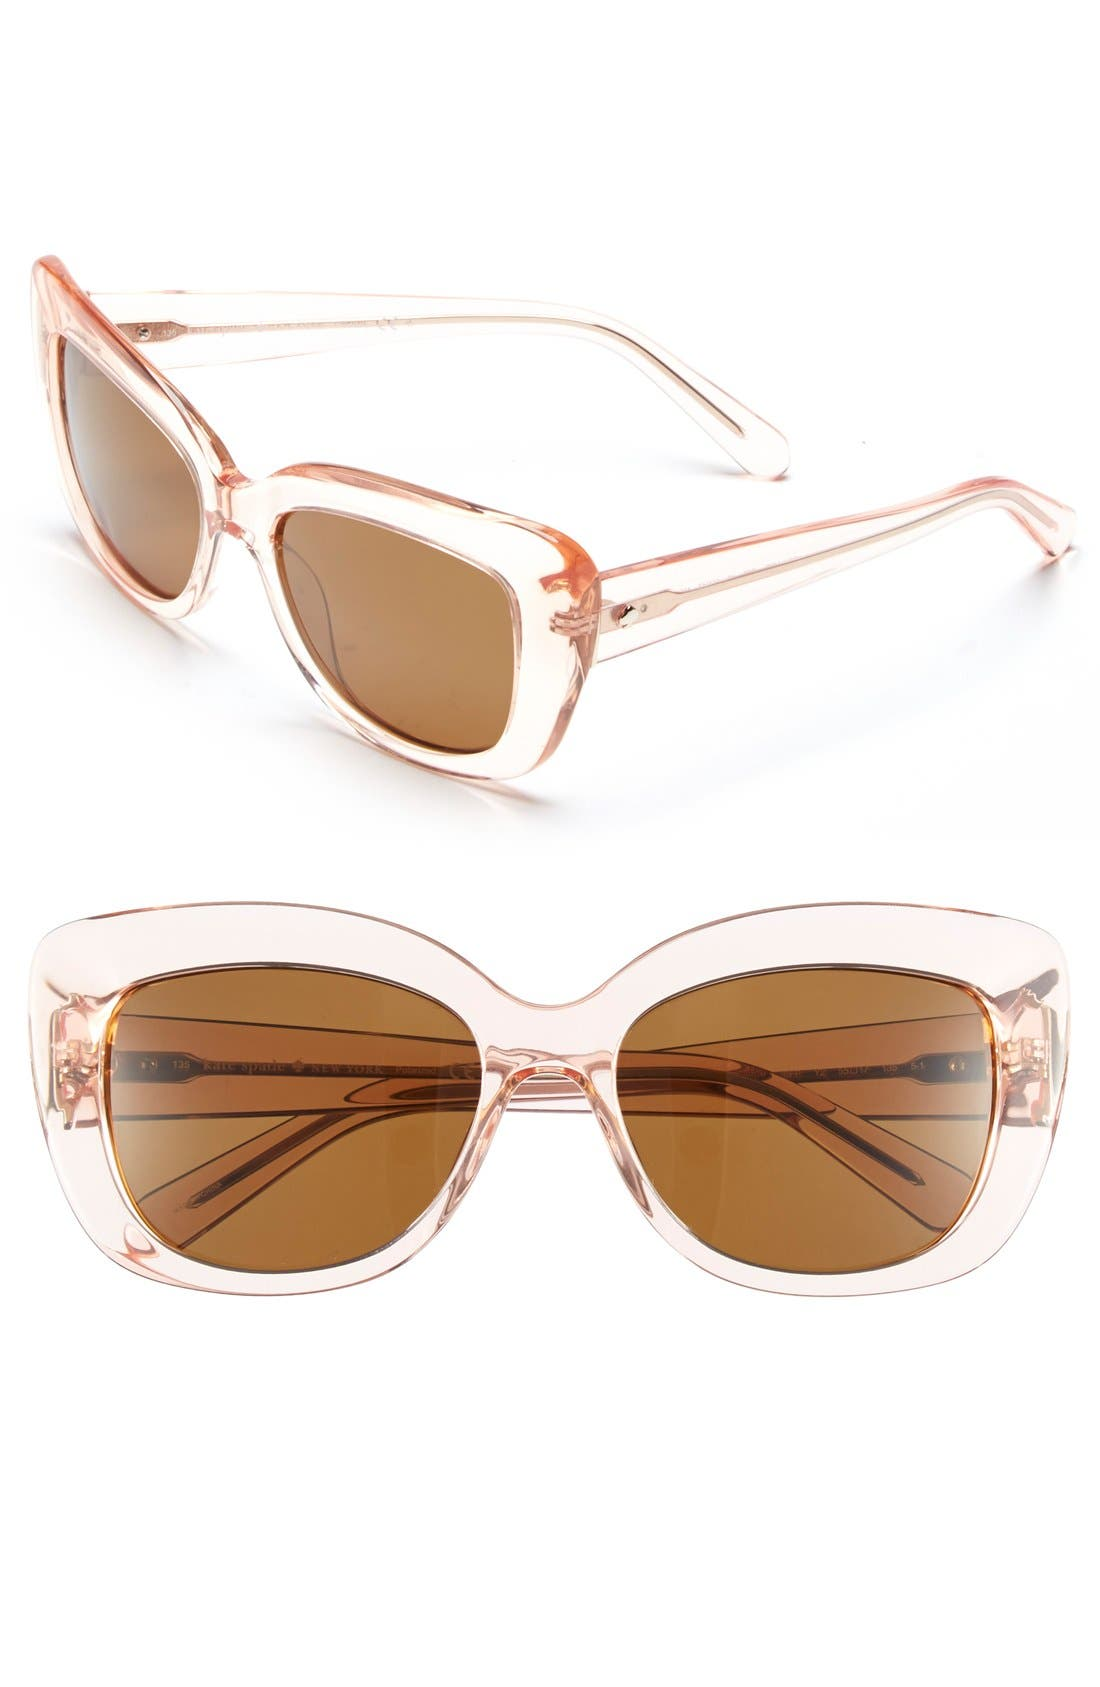 Main Image - kate spade new york 'ursula' 55mm polarized cat eye sunglasses (Nordstrom Exclusive)